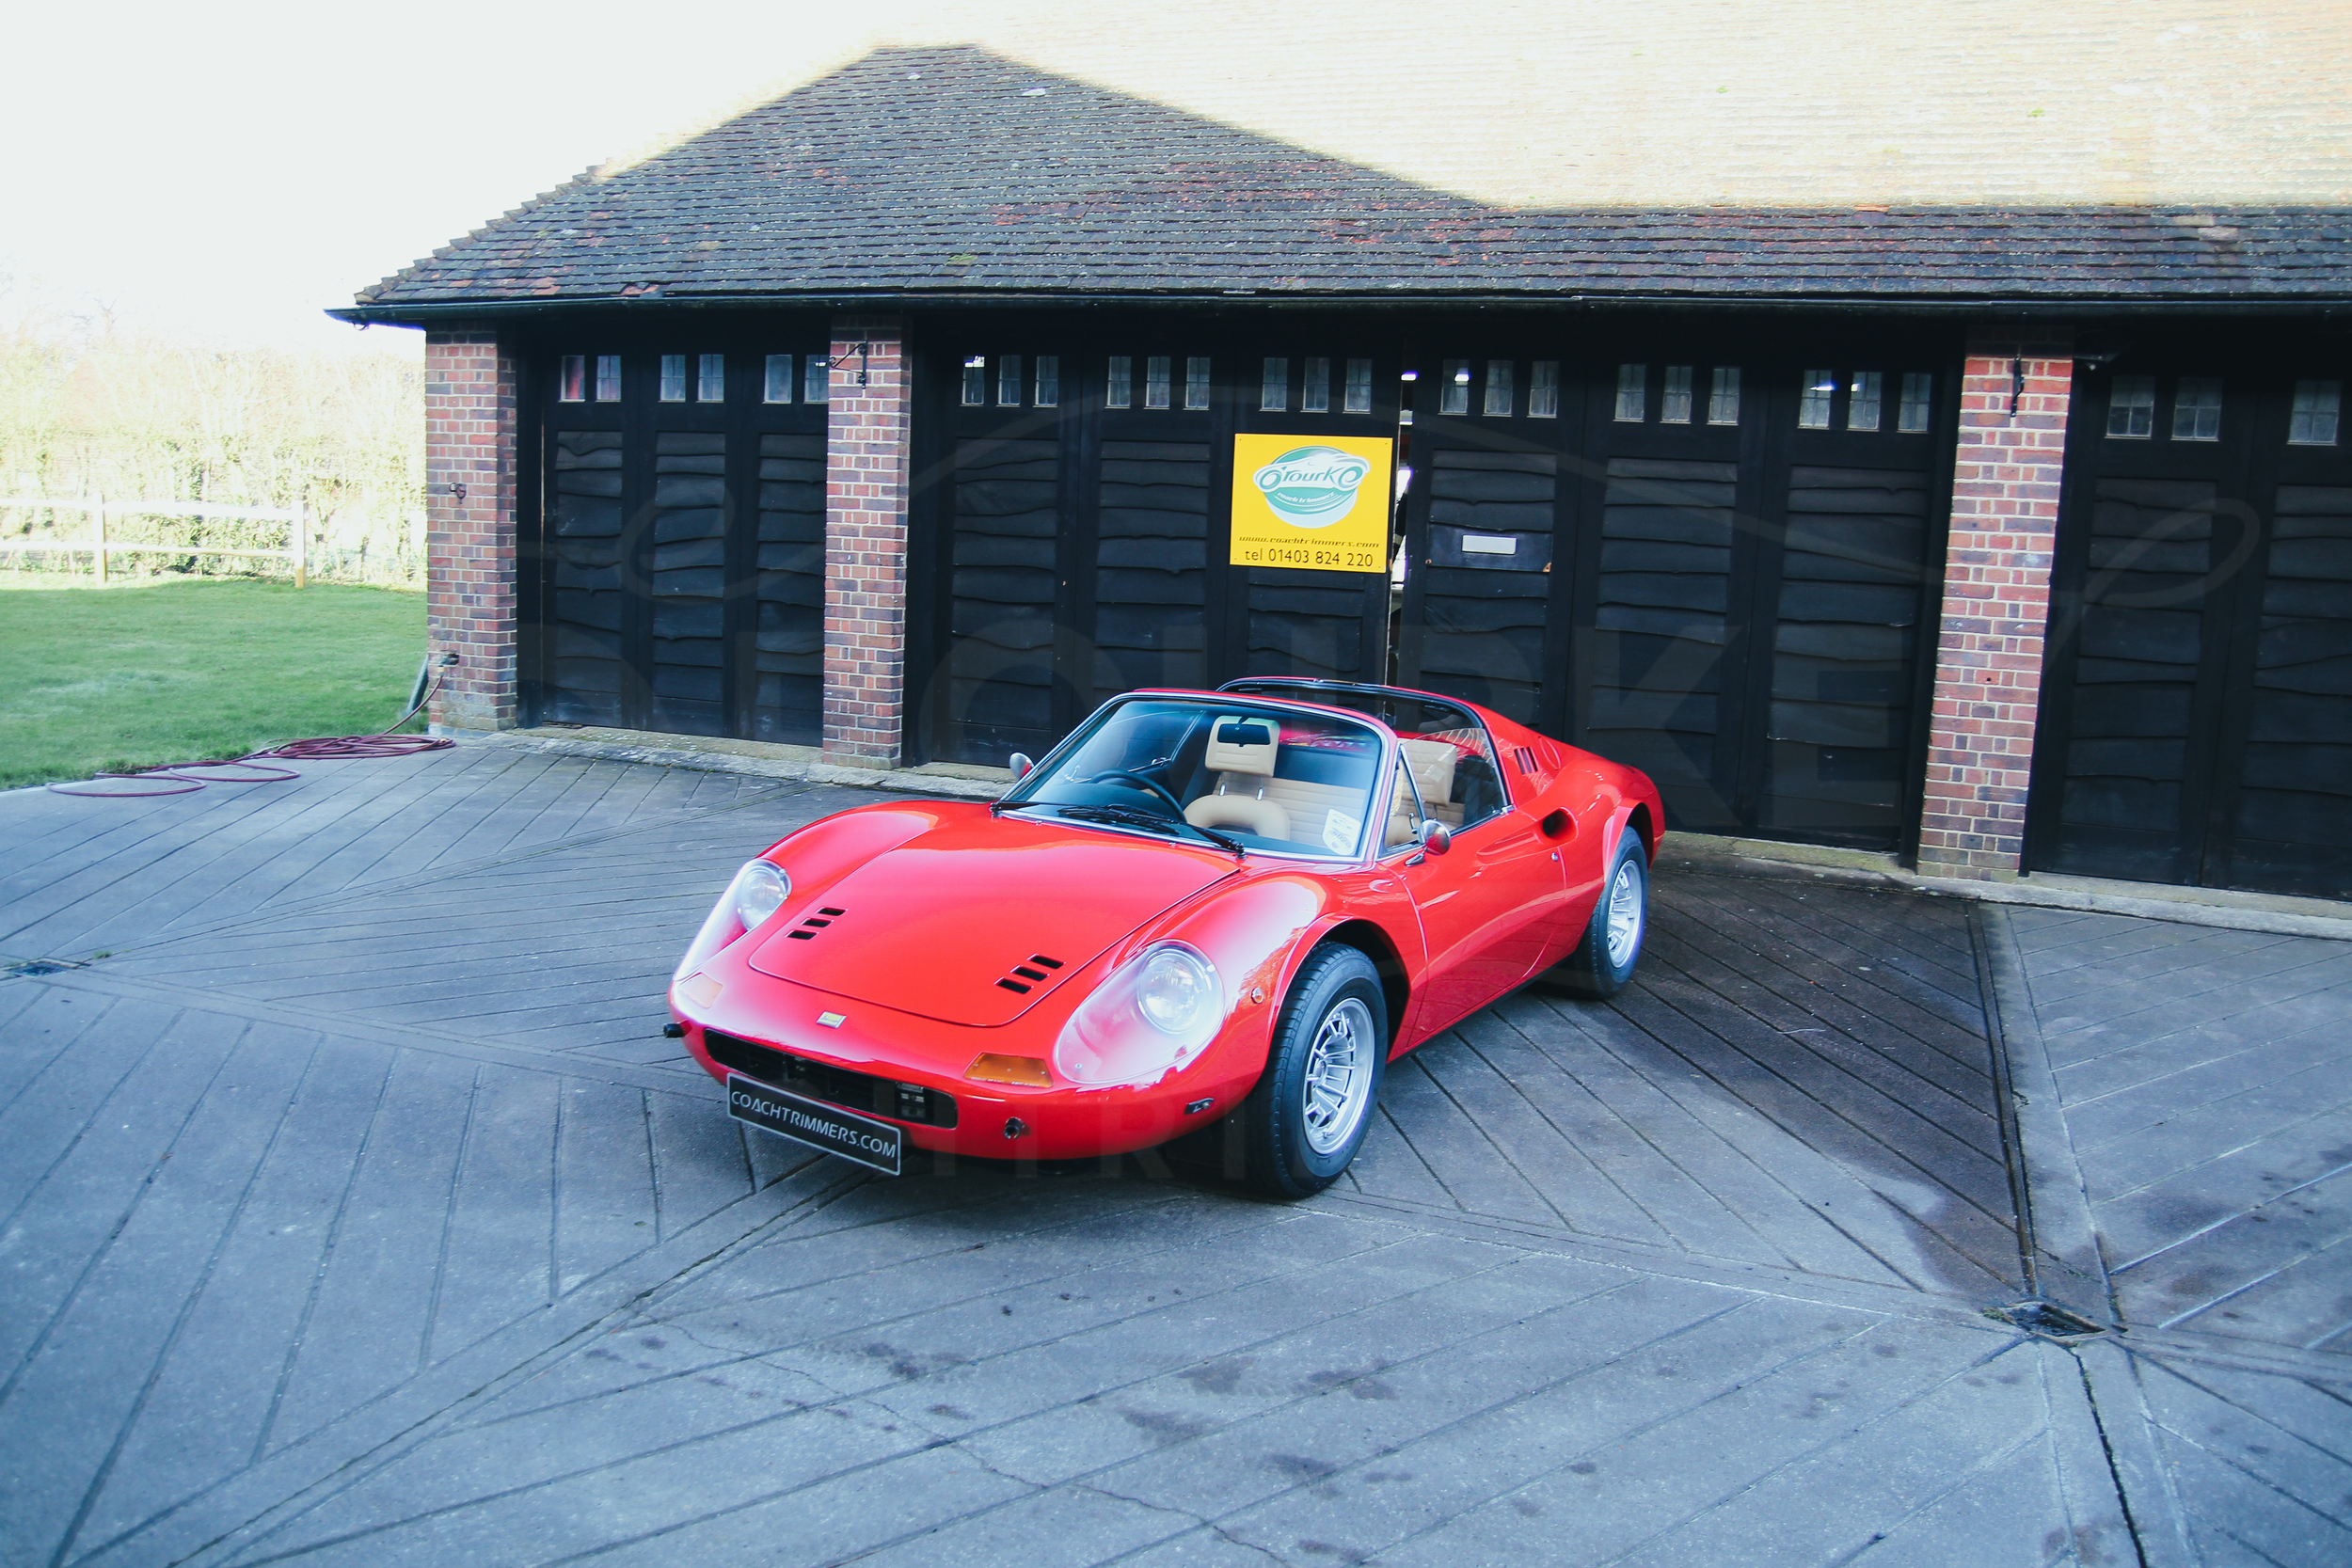 o-rourke-coachtrimmers-ferrari-246-dino-gts-flairs-and-chairs-4.jpg